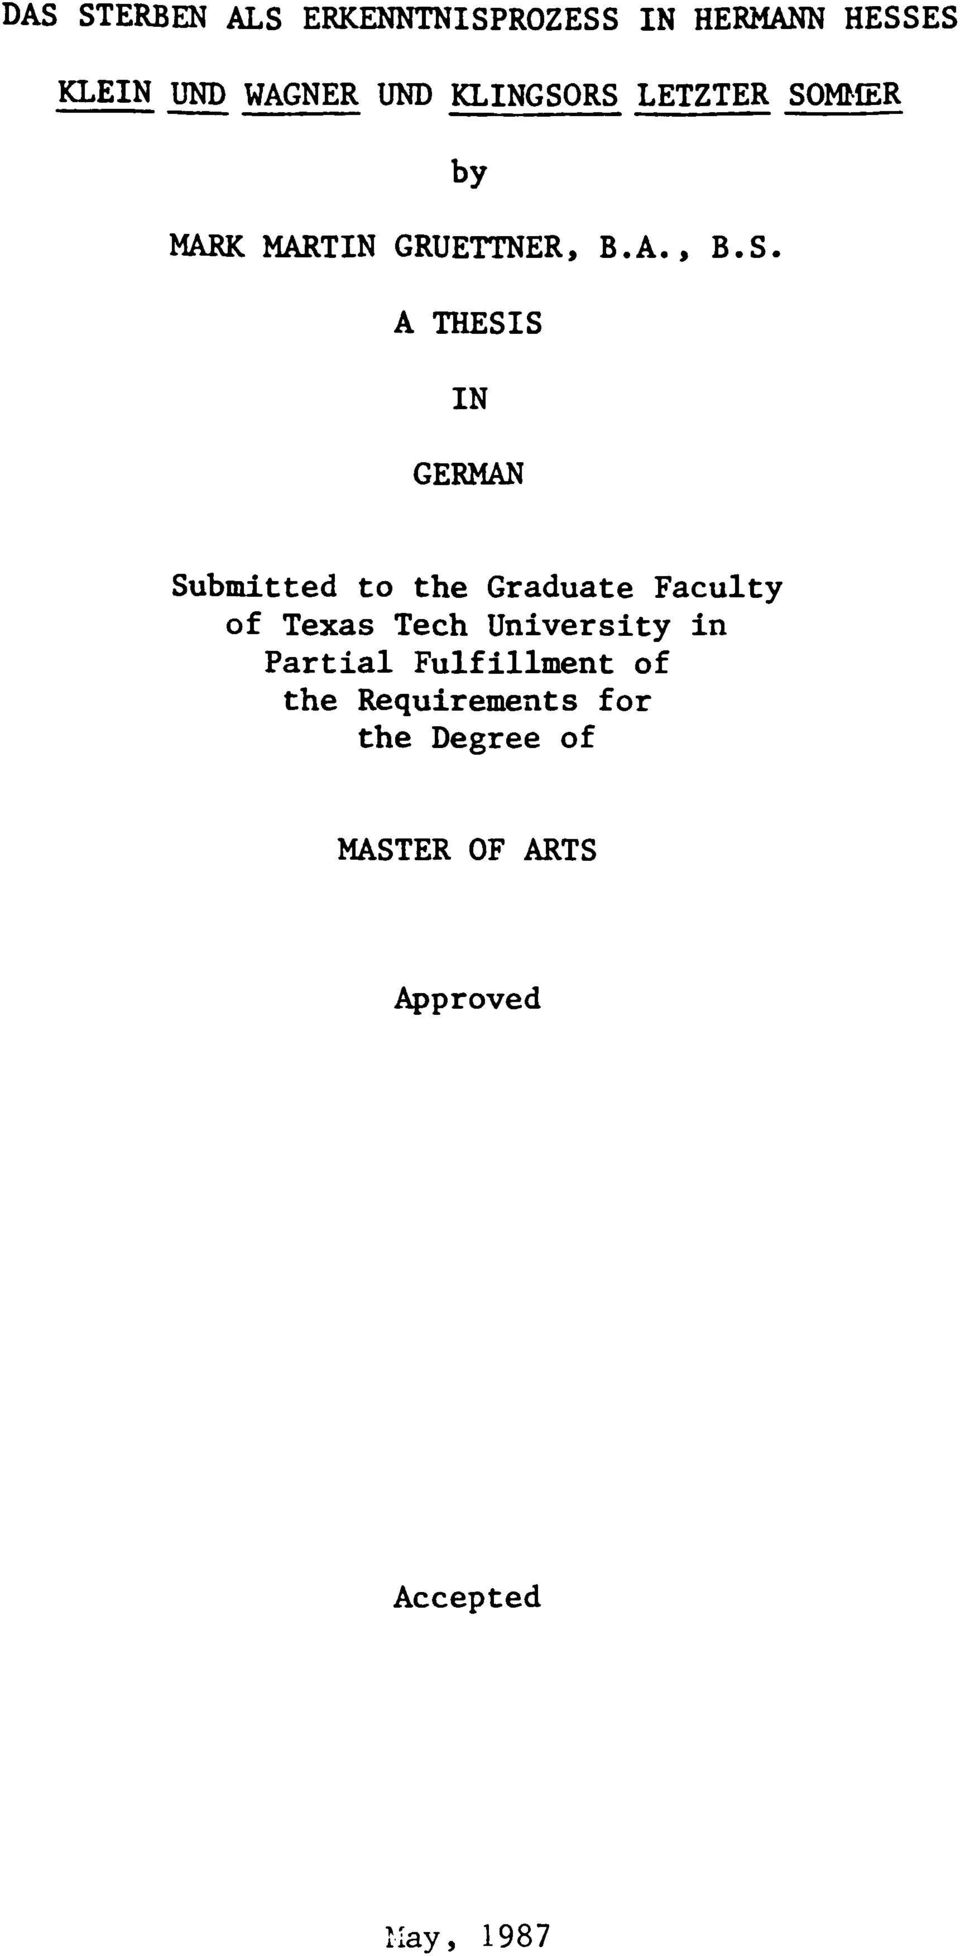 RS LETZTER SOM^ER by MARK MARTIN GRUETTNER, B.A., B.S. A THESIS IN GERMAN